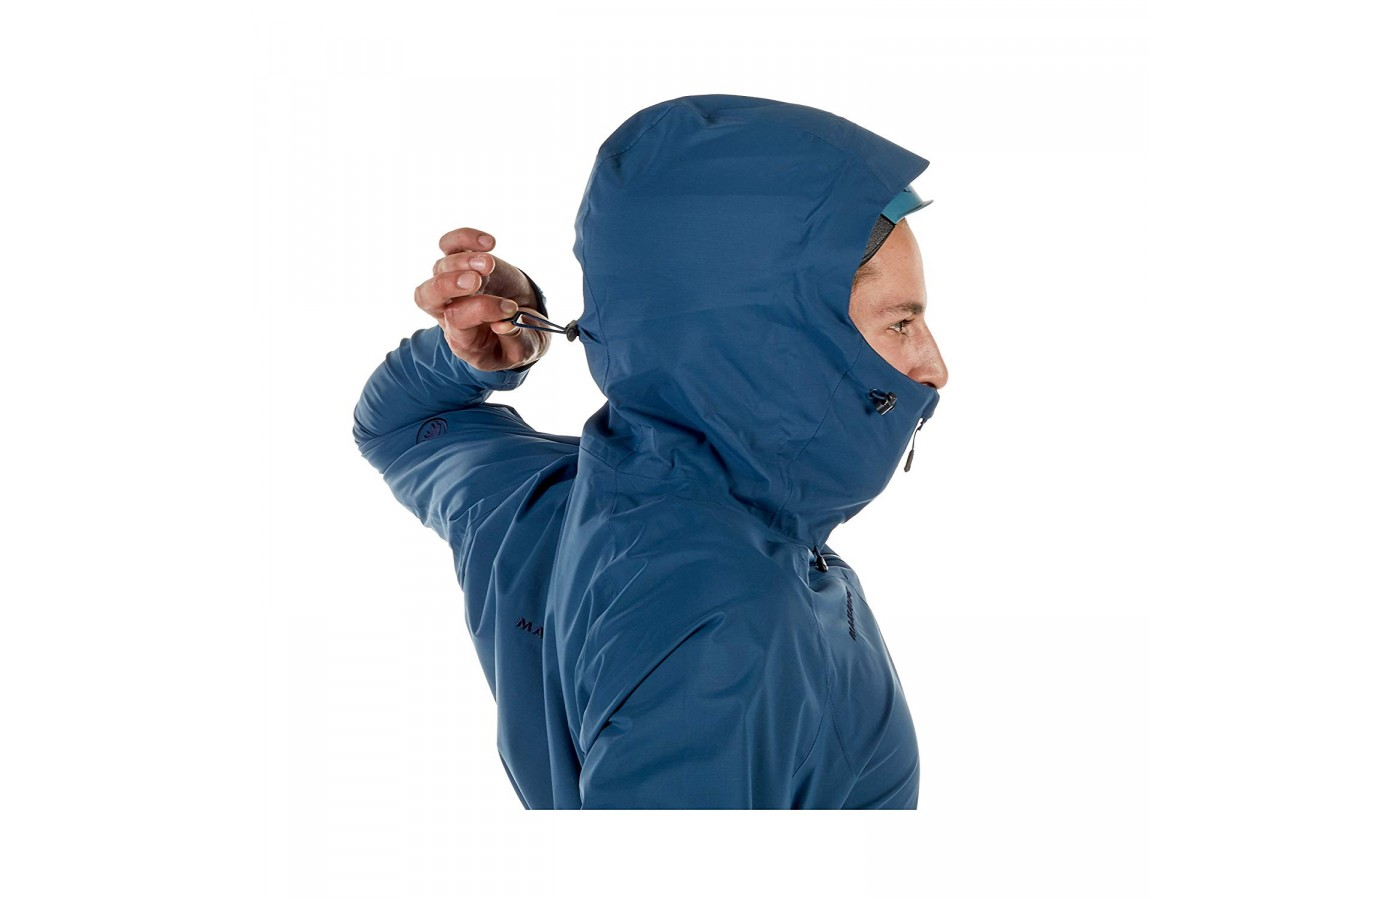 The hood, which declares itself always capable of staying in place, is also helmet compatible, insisting that it is not floppy without the helmet option but perfectly capable with it.